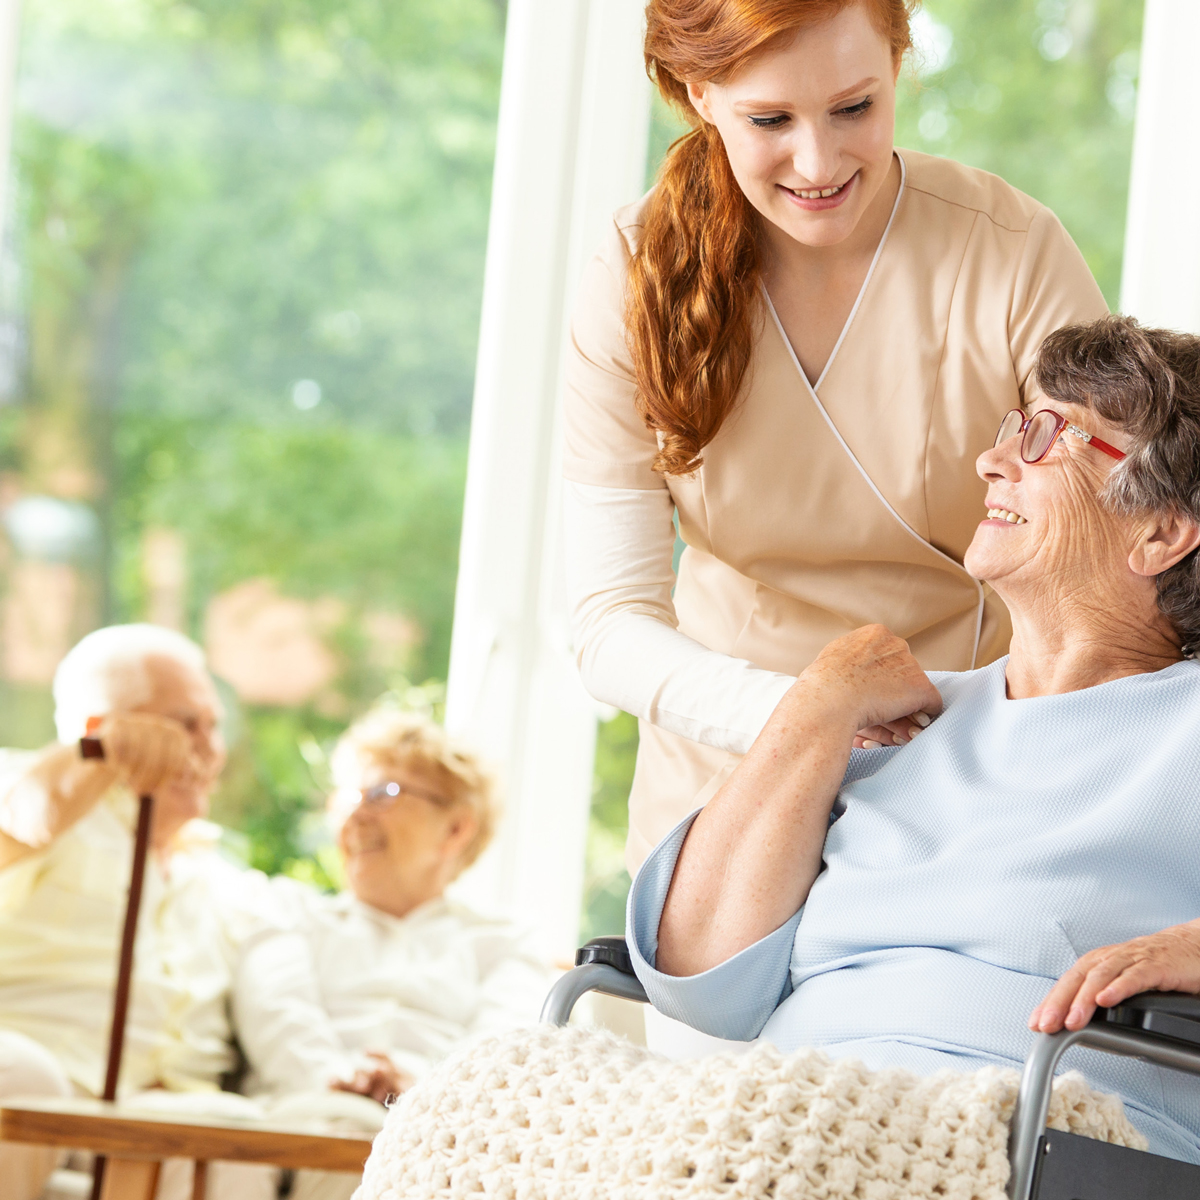 Memory Care vs. Nursing Care: What's Better for Dementia Patients?